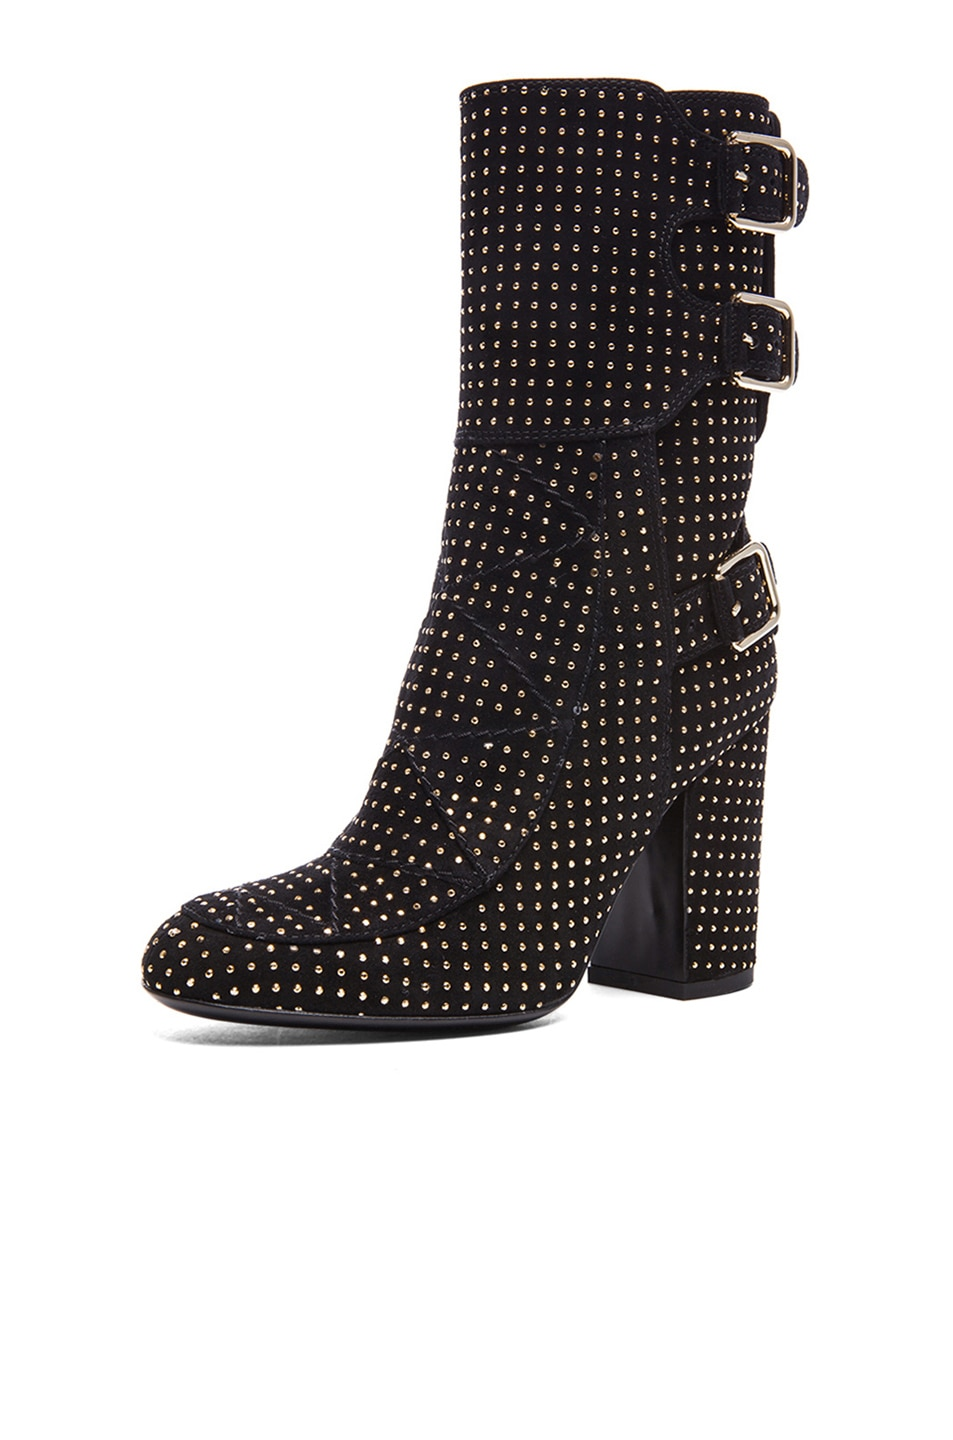 Image 2 of Laurence Dacade Merli Suede Studded Boots in Black & Gold